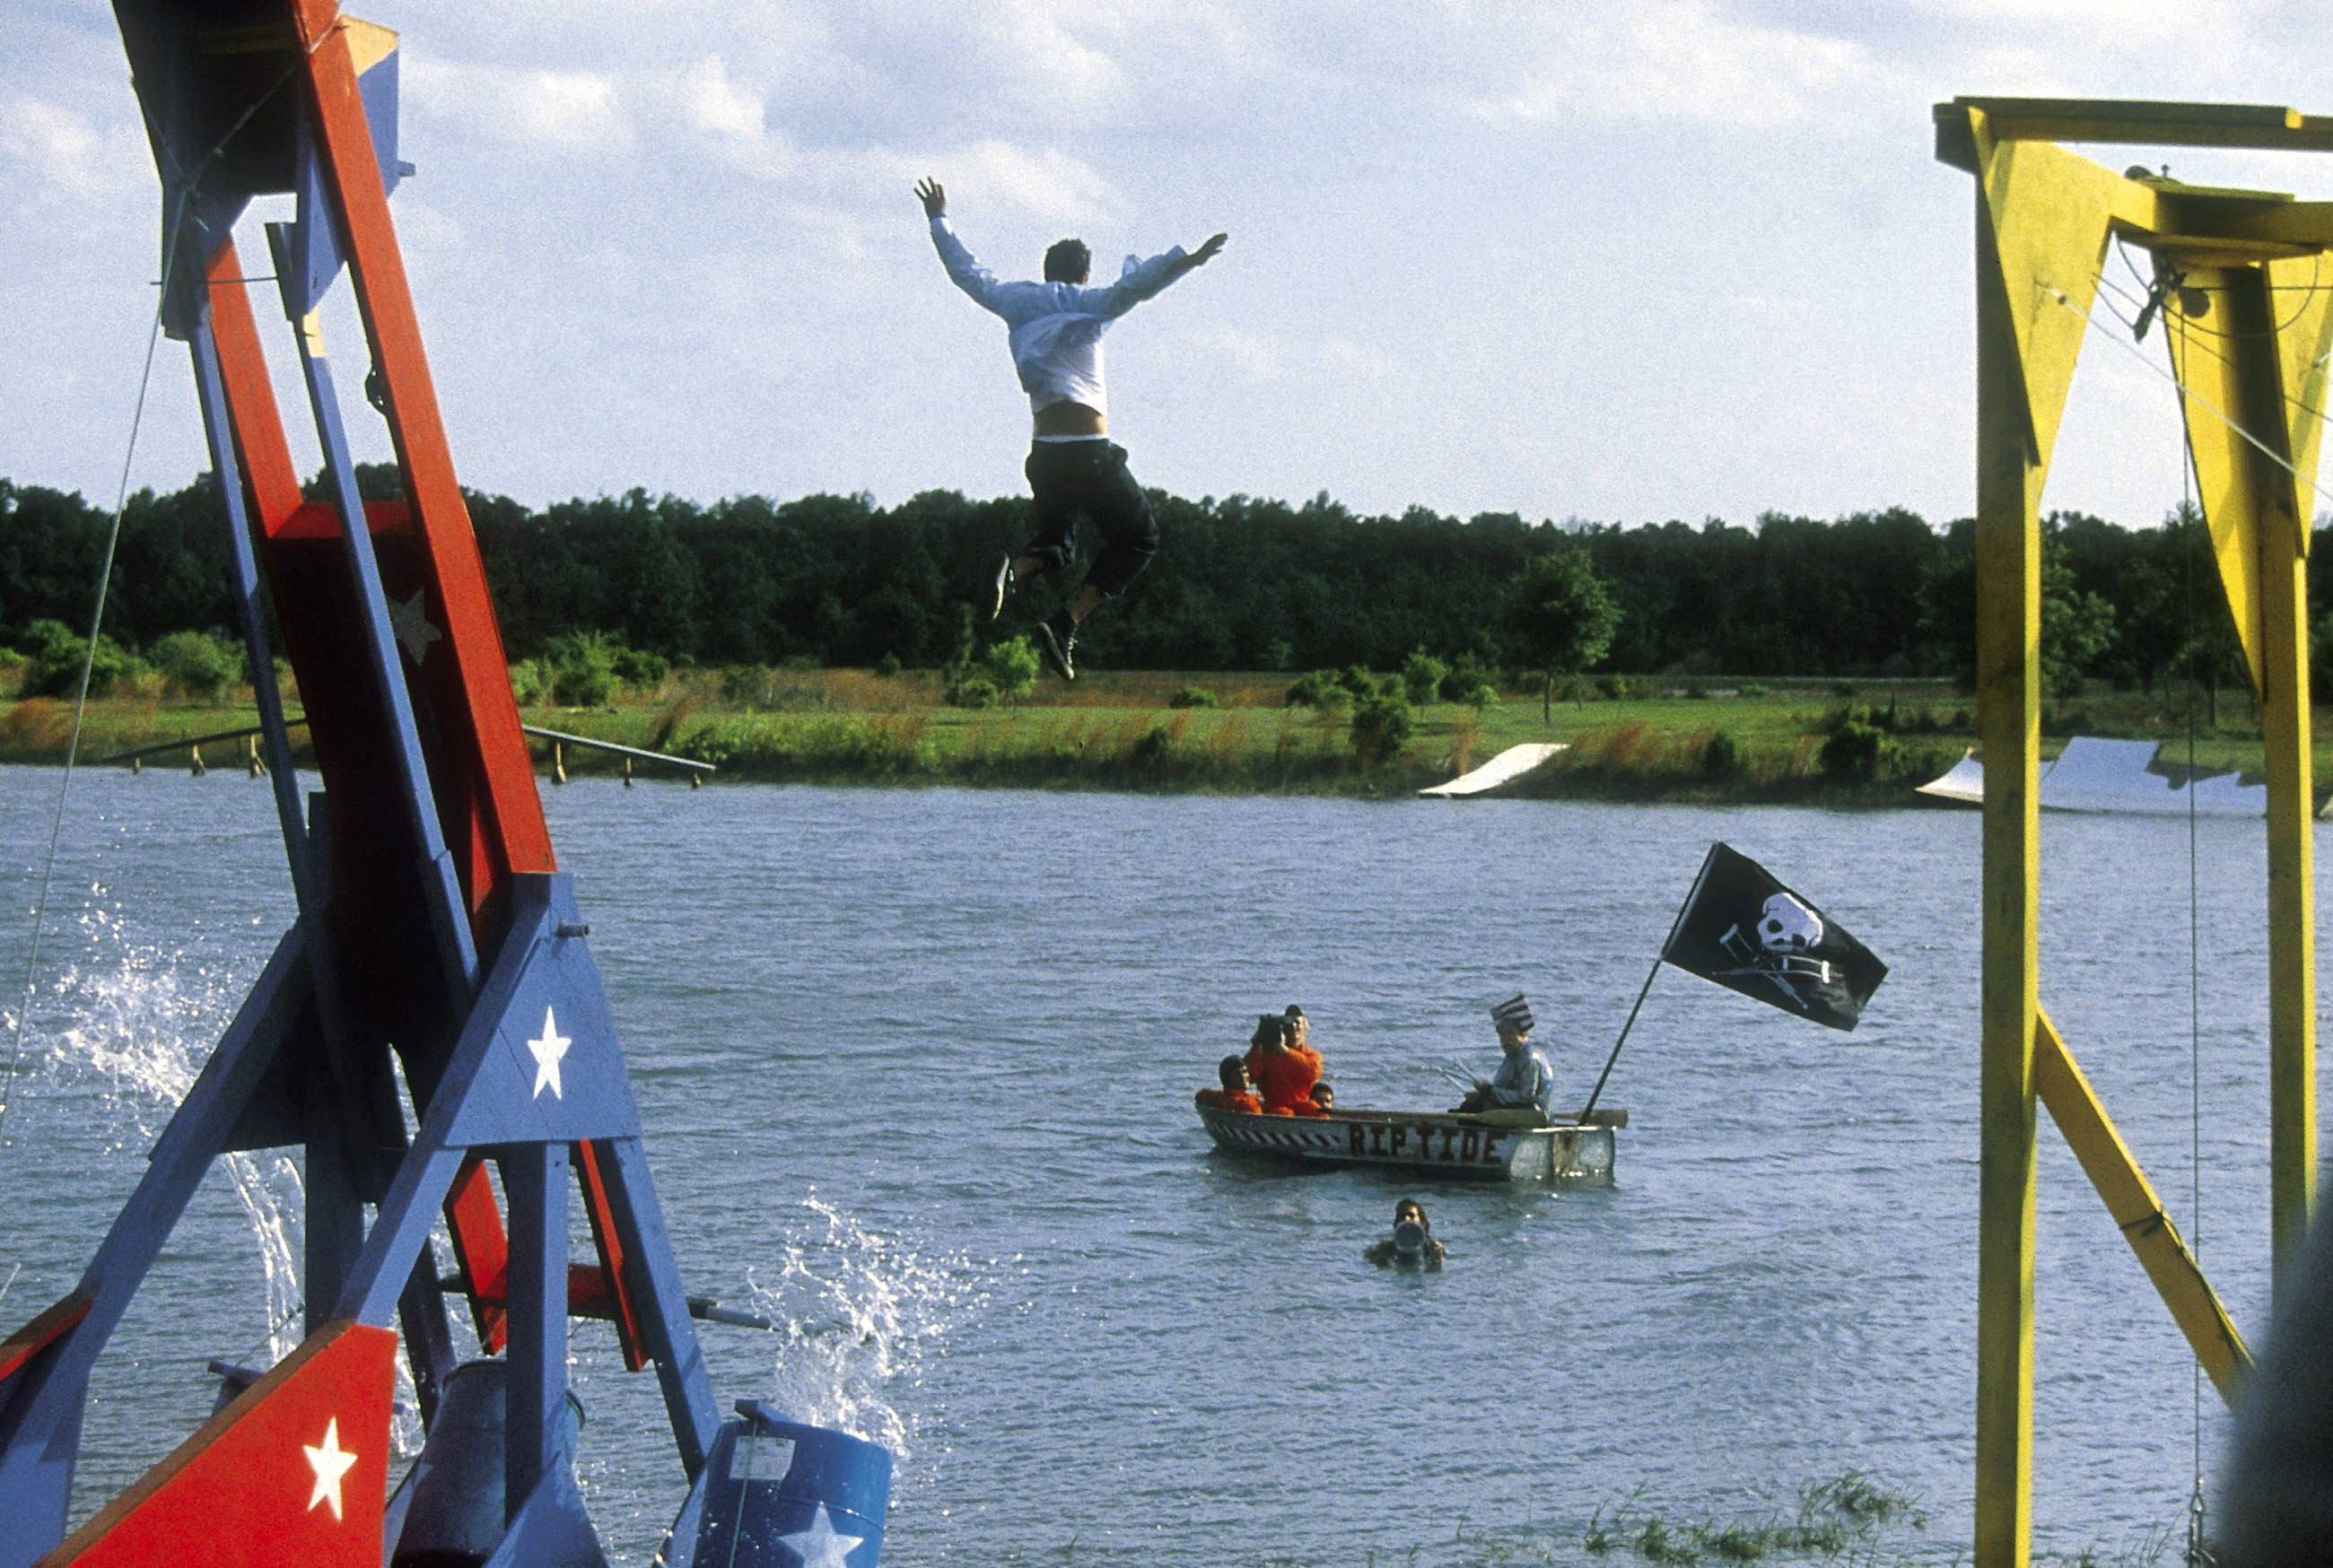 Johnny Knoxville getting flung into the water